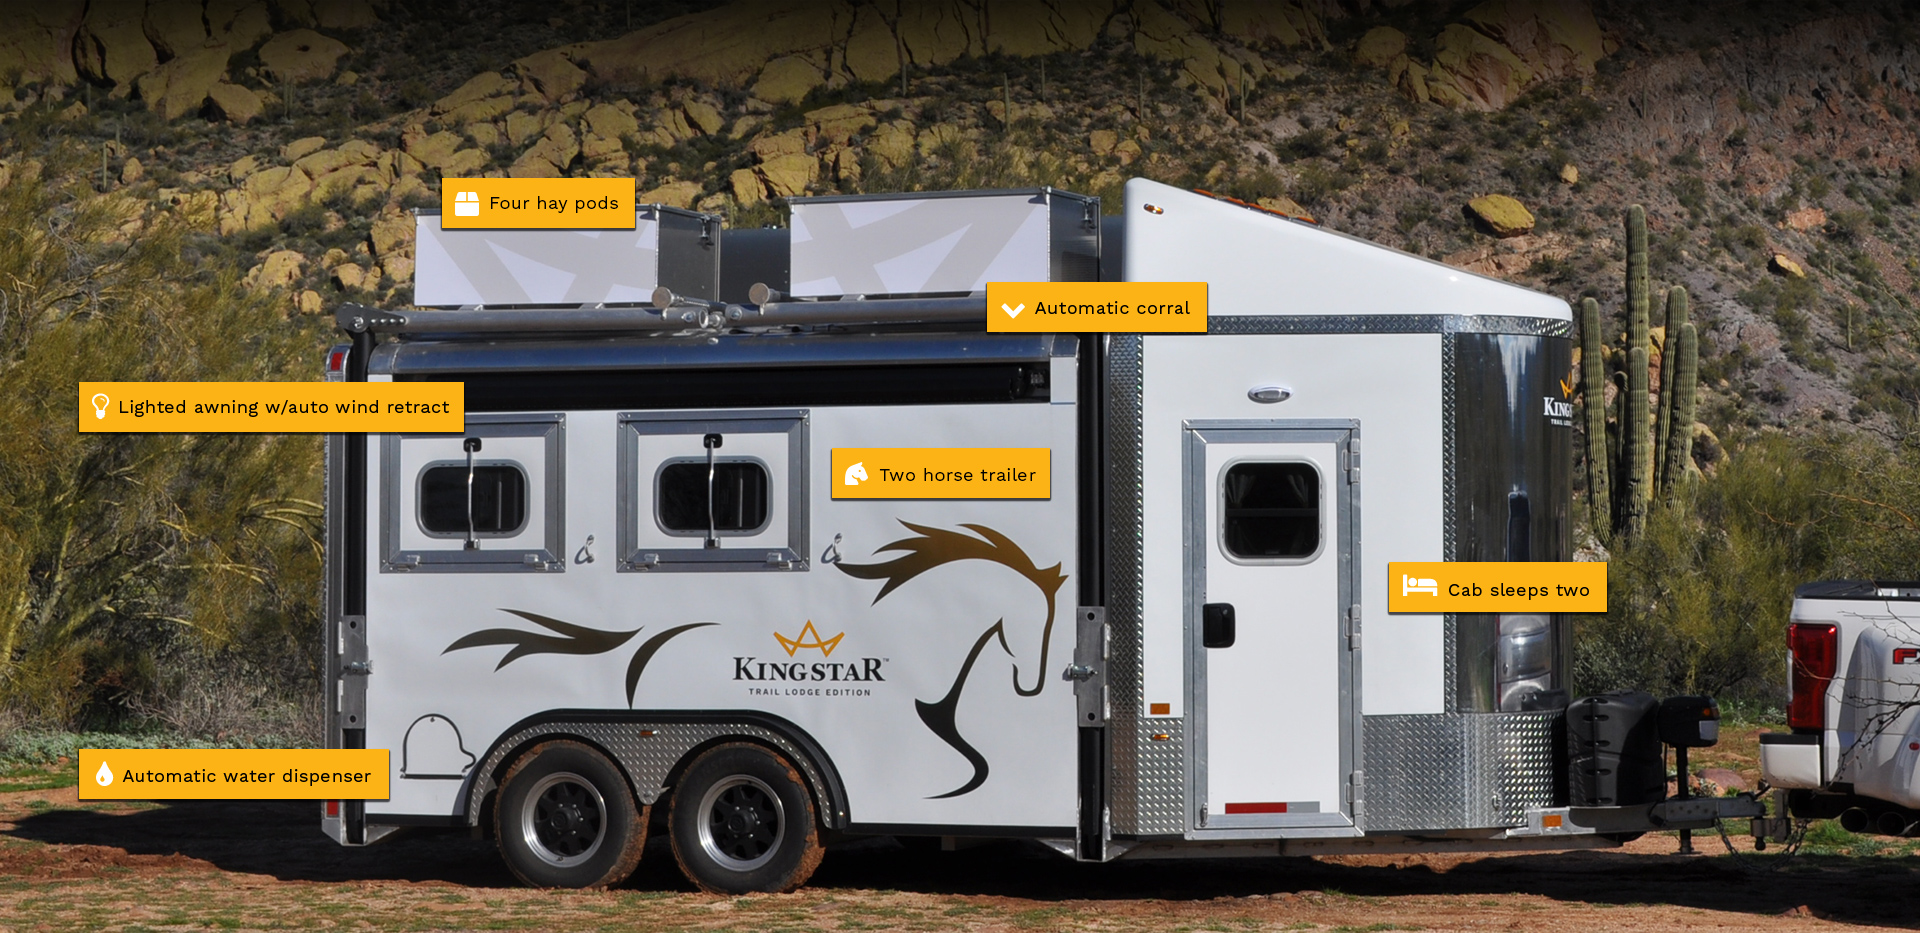 Features of the KingStar horse trailer